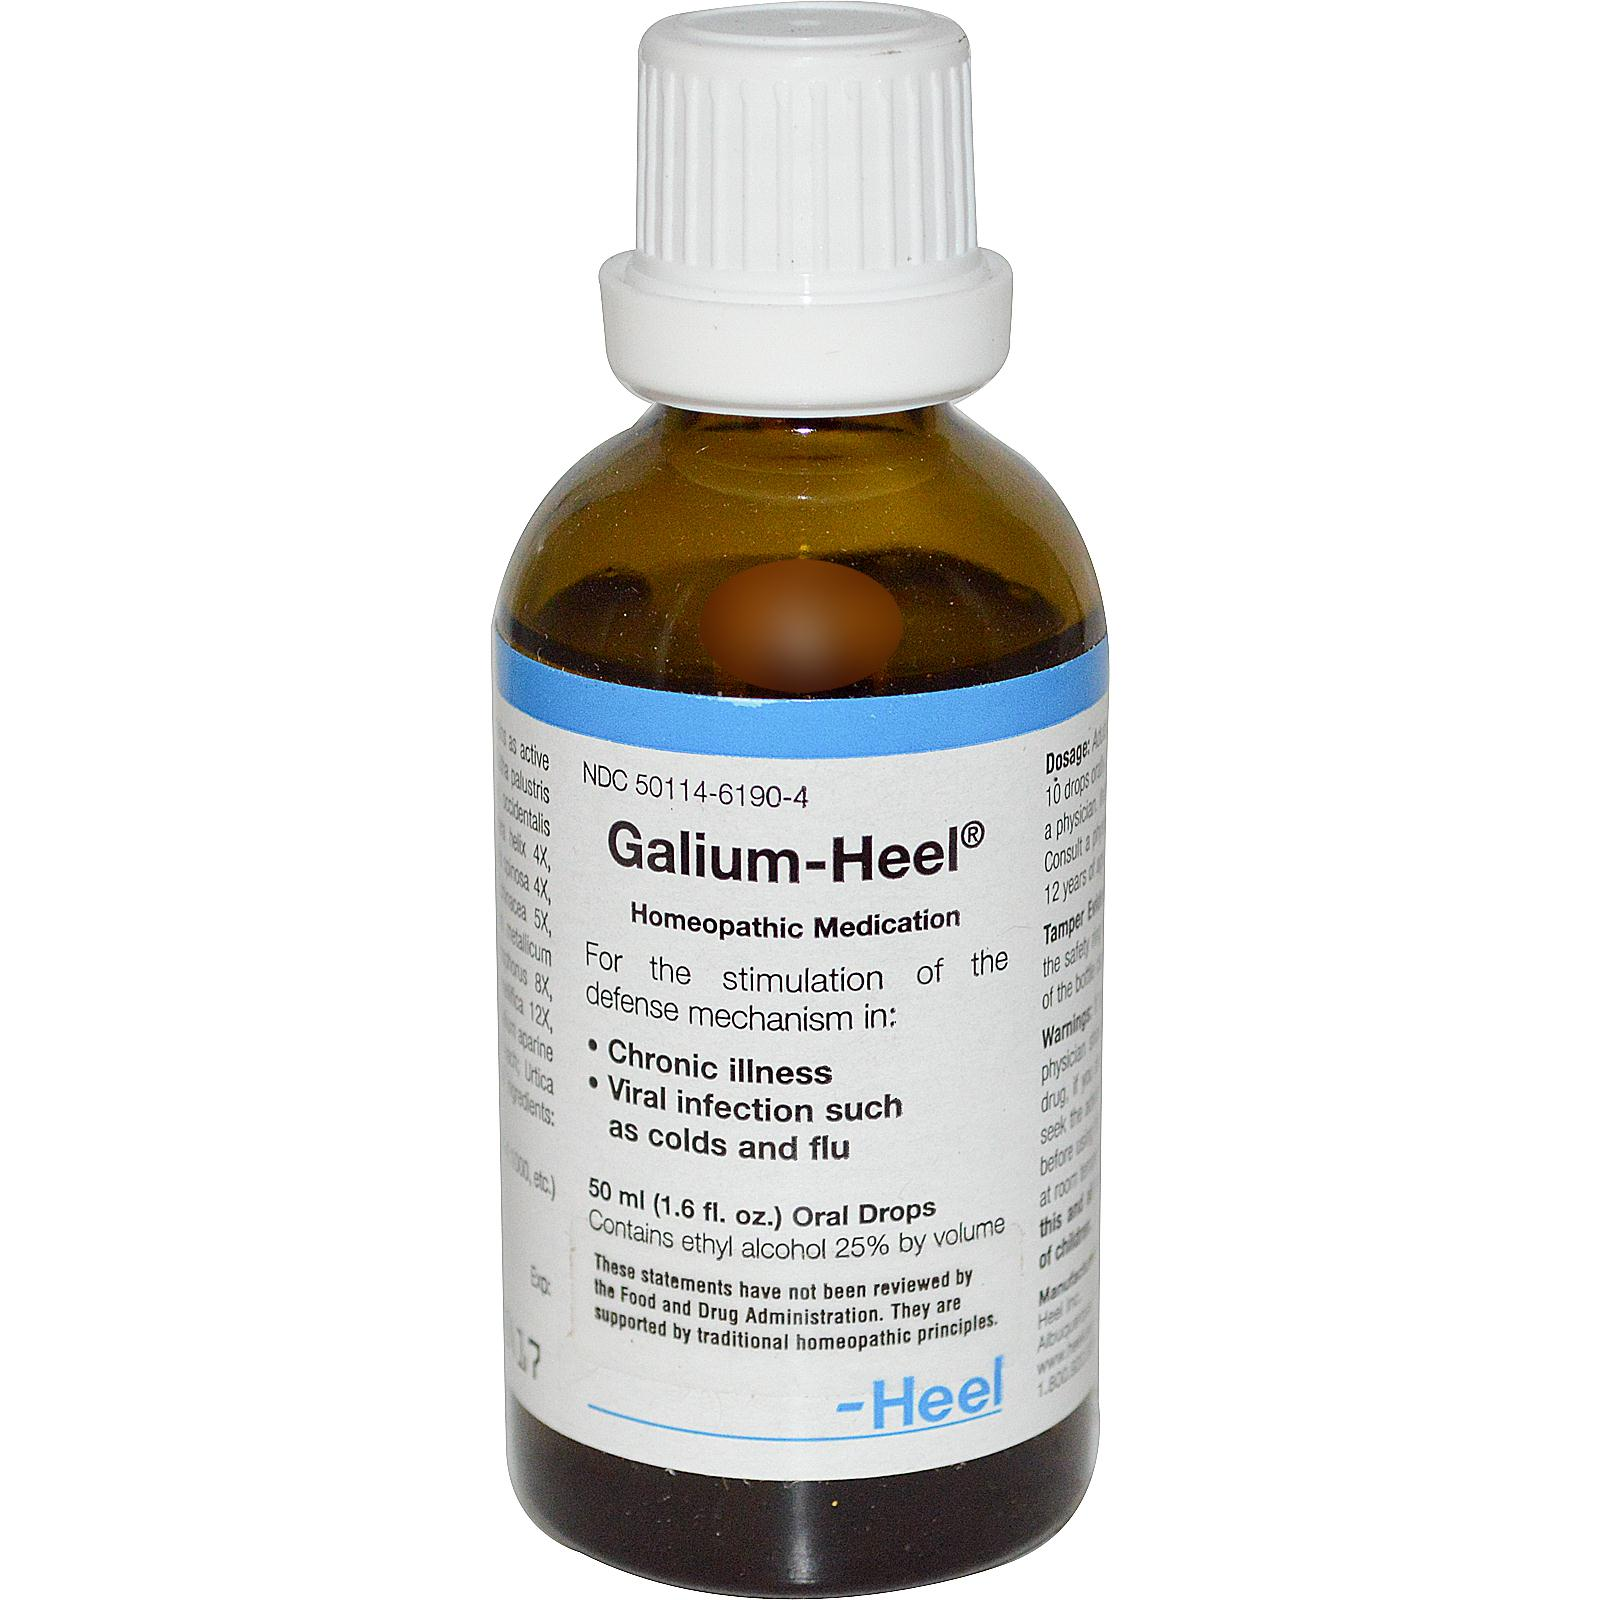 Galium Heel, liver health, detoxification, cellular health, lymphatic health, kidney health